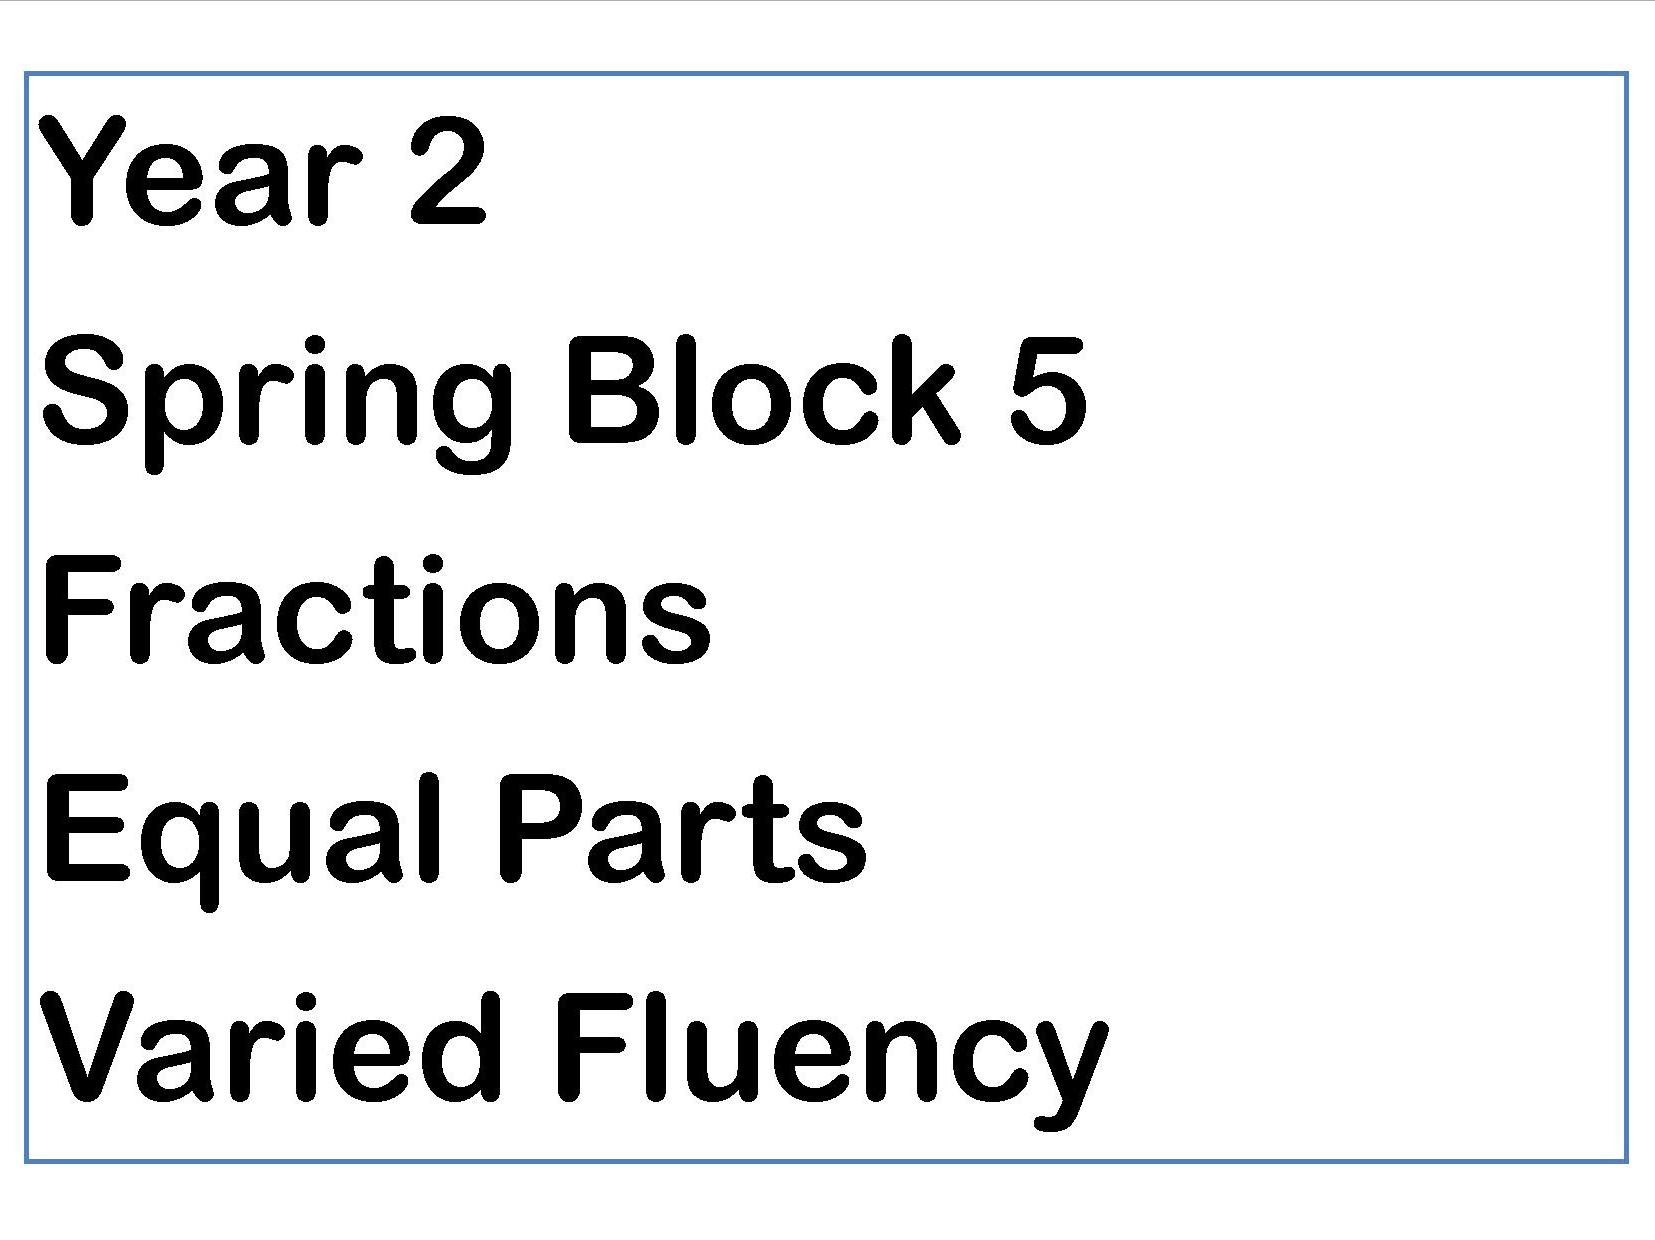 Year 2 Spring Block Fractions Equal Parts Fluency